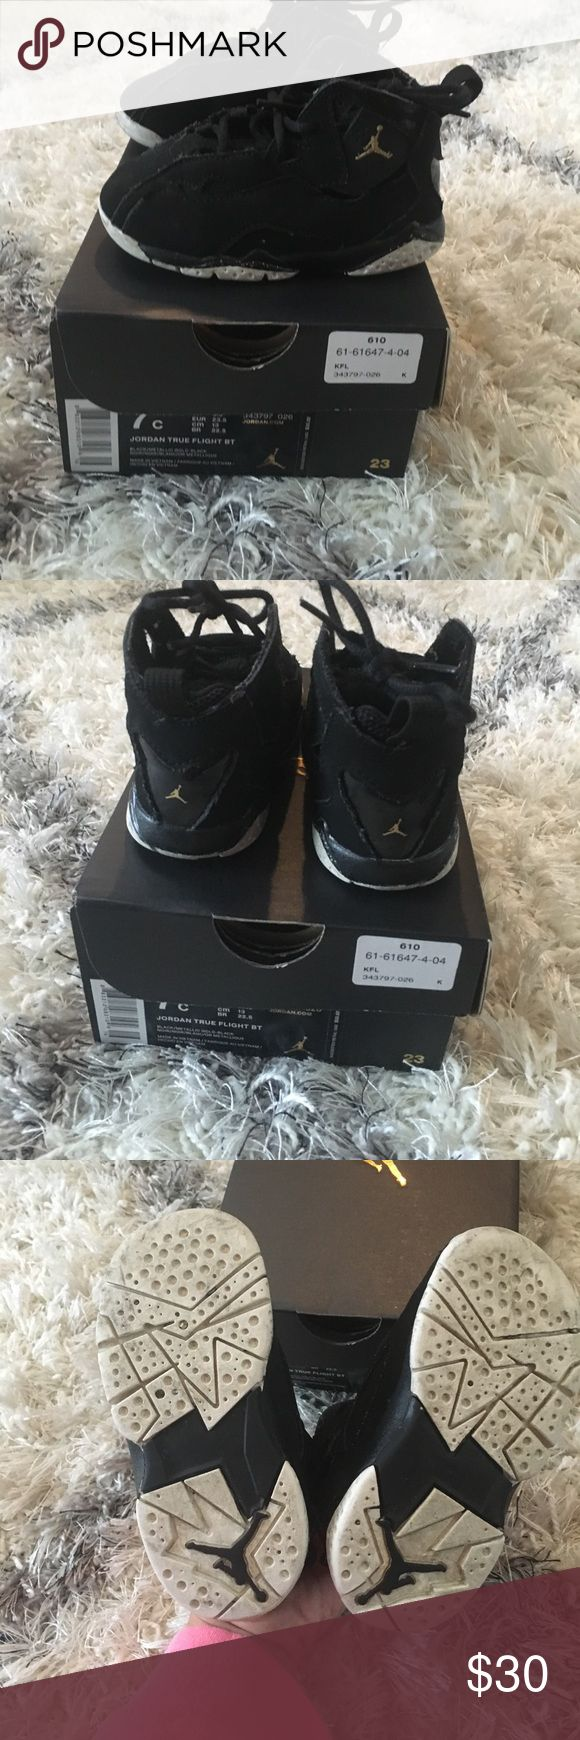 Jordan True Flight Toddler Shoes Jordan True Flight Toddler Shoes - Good Condition! Jordan Shoes